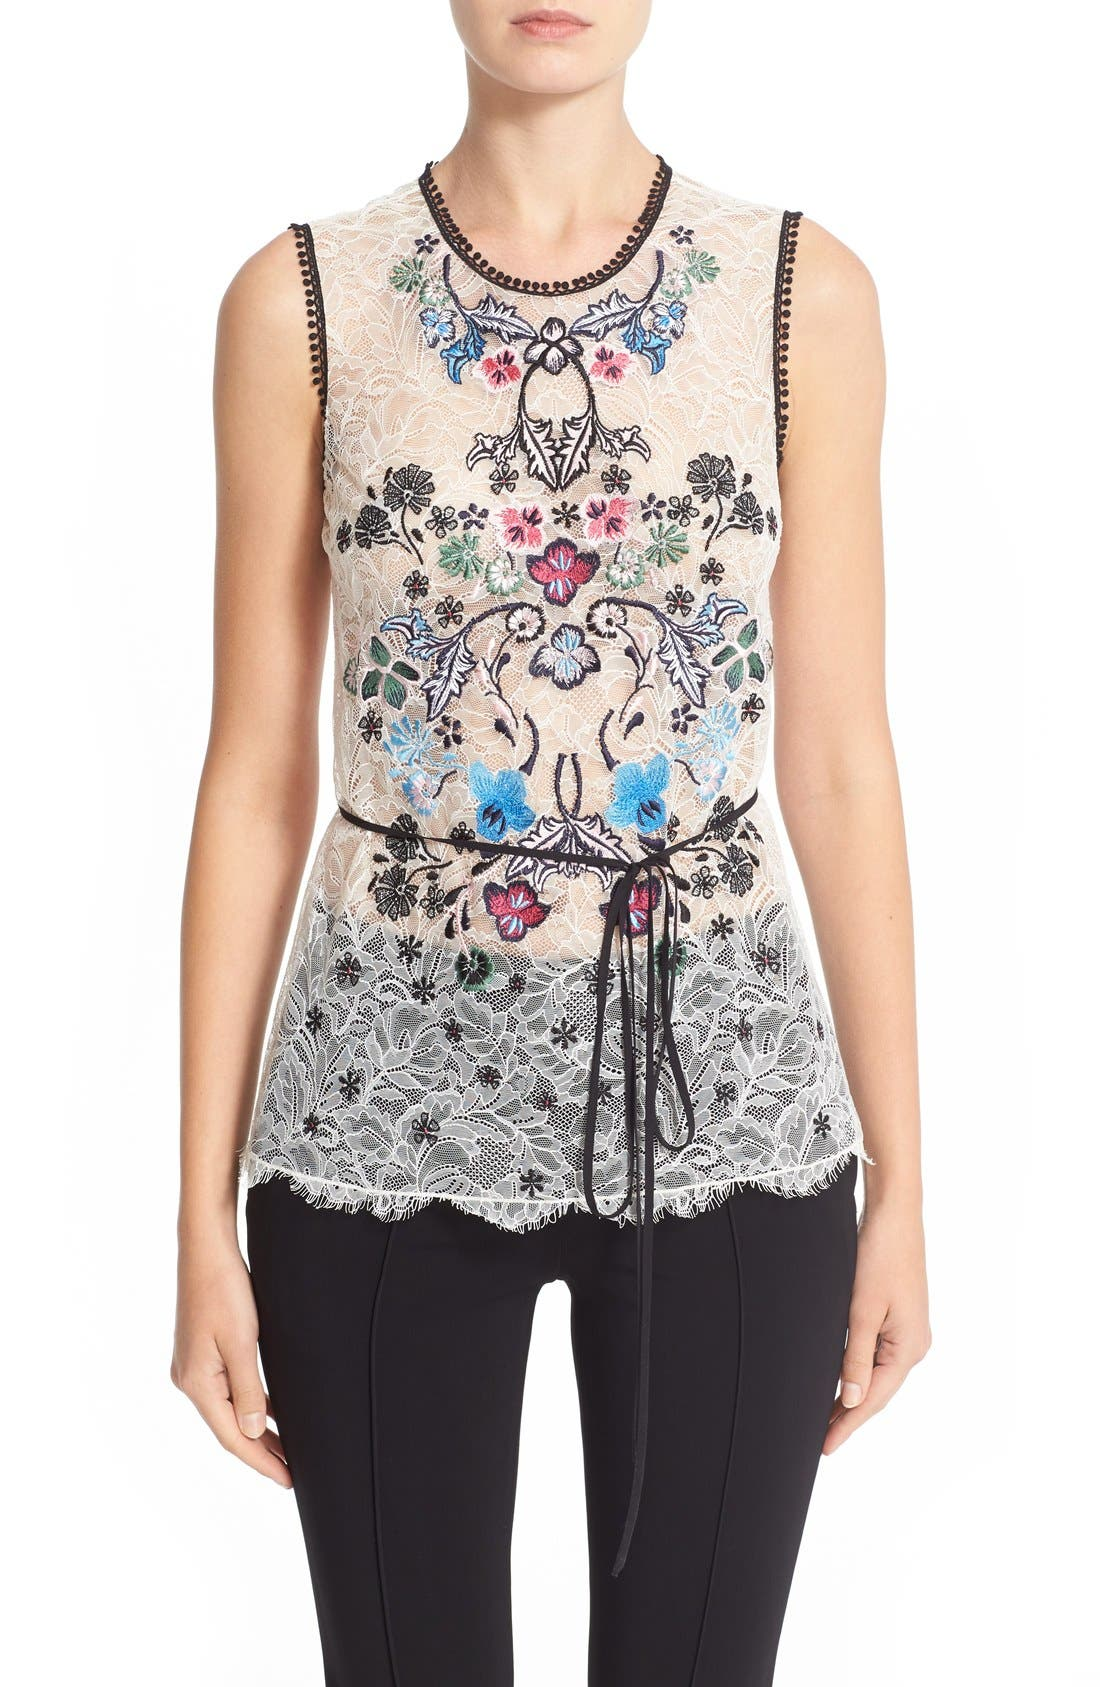 Alternate Image 1 Selected - Yigal Azrouël Floral Embroidered Lace Top